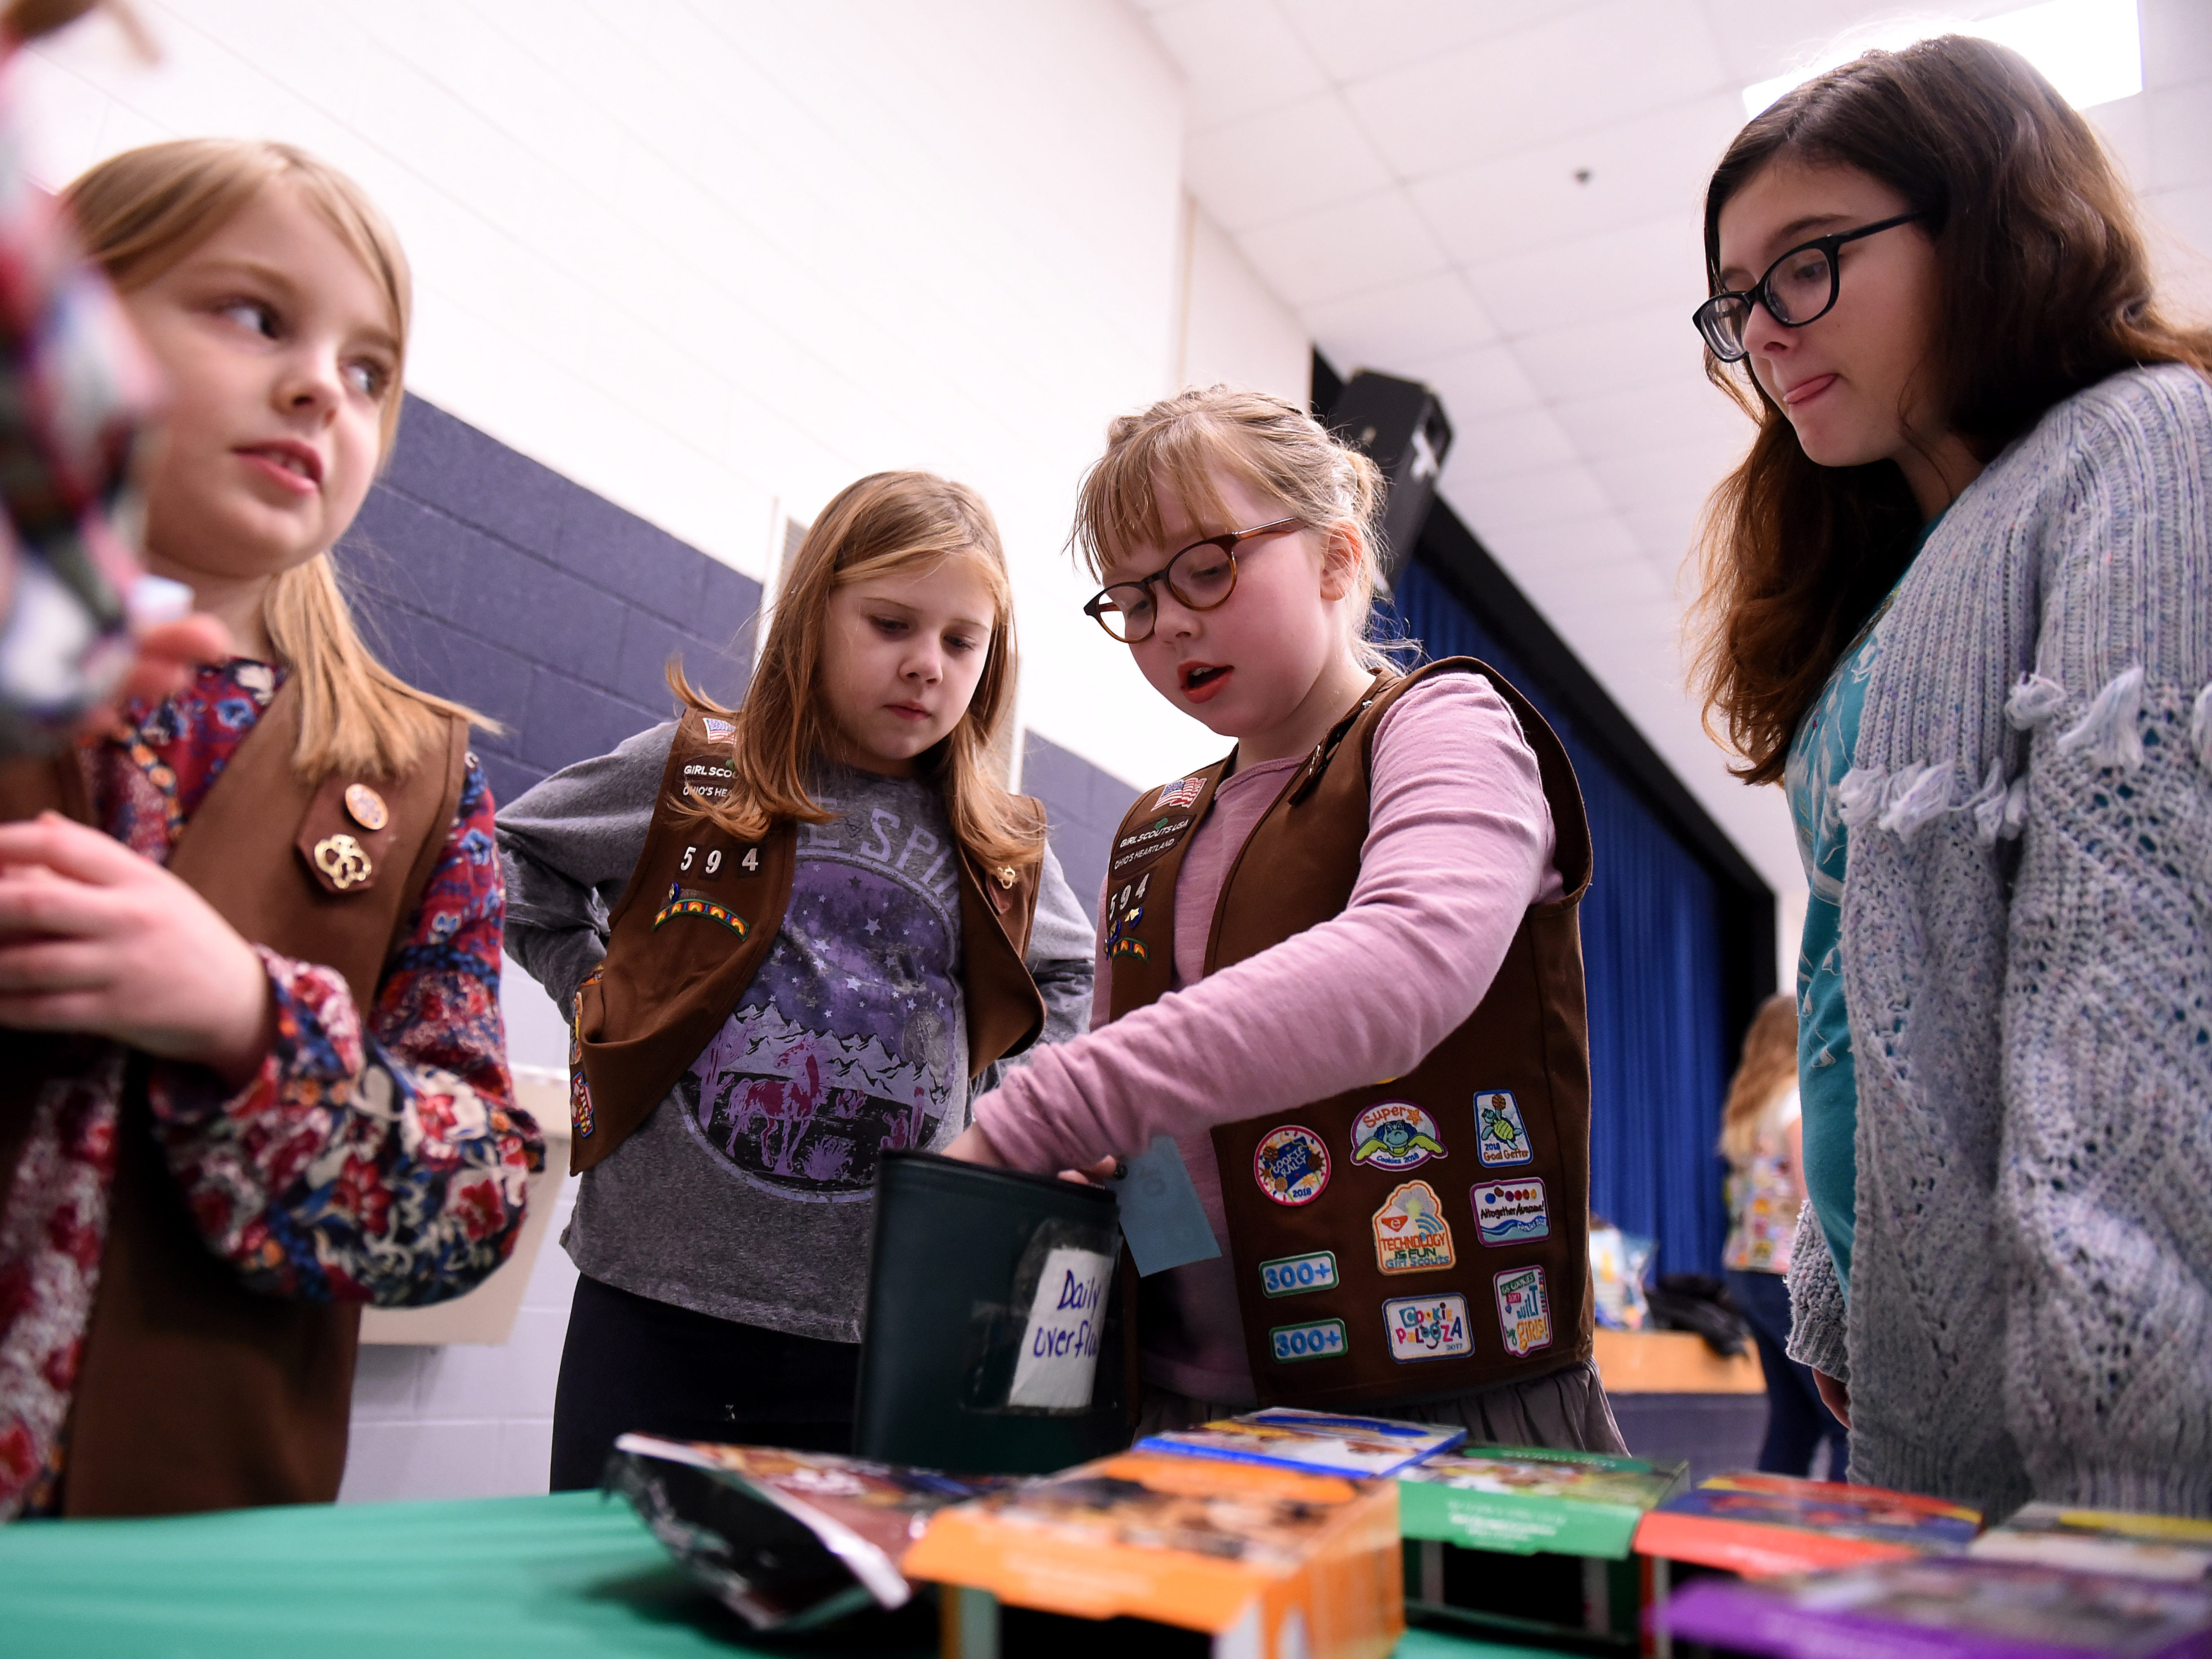 Girl Scouts from Granville area troops gathered for a cookie rally at Granville Elementary on Friday, Jan. 11, 2019. Scouts meet to sample cookies, practice making change and calculating cost, and other entrepreneur skills during the event to start the Girl Scout cookie season. The gathering of Granville area troops selected the new S'mores cookie as their favorite in a poll. Local scouts will be taking orders through January 27th and then will be selling at booths locally through March 24.